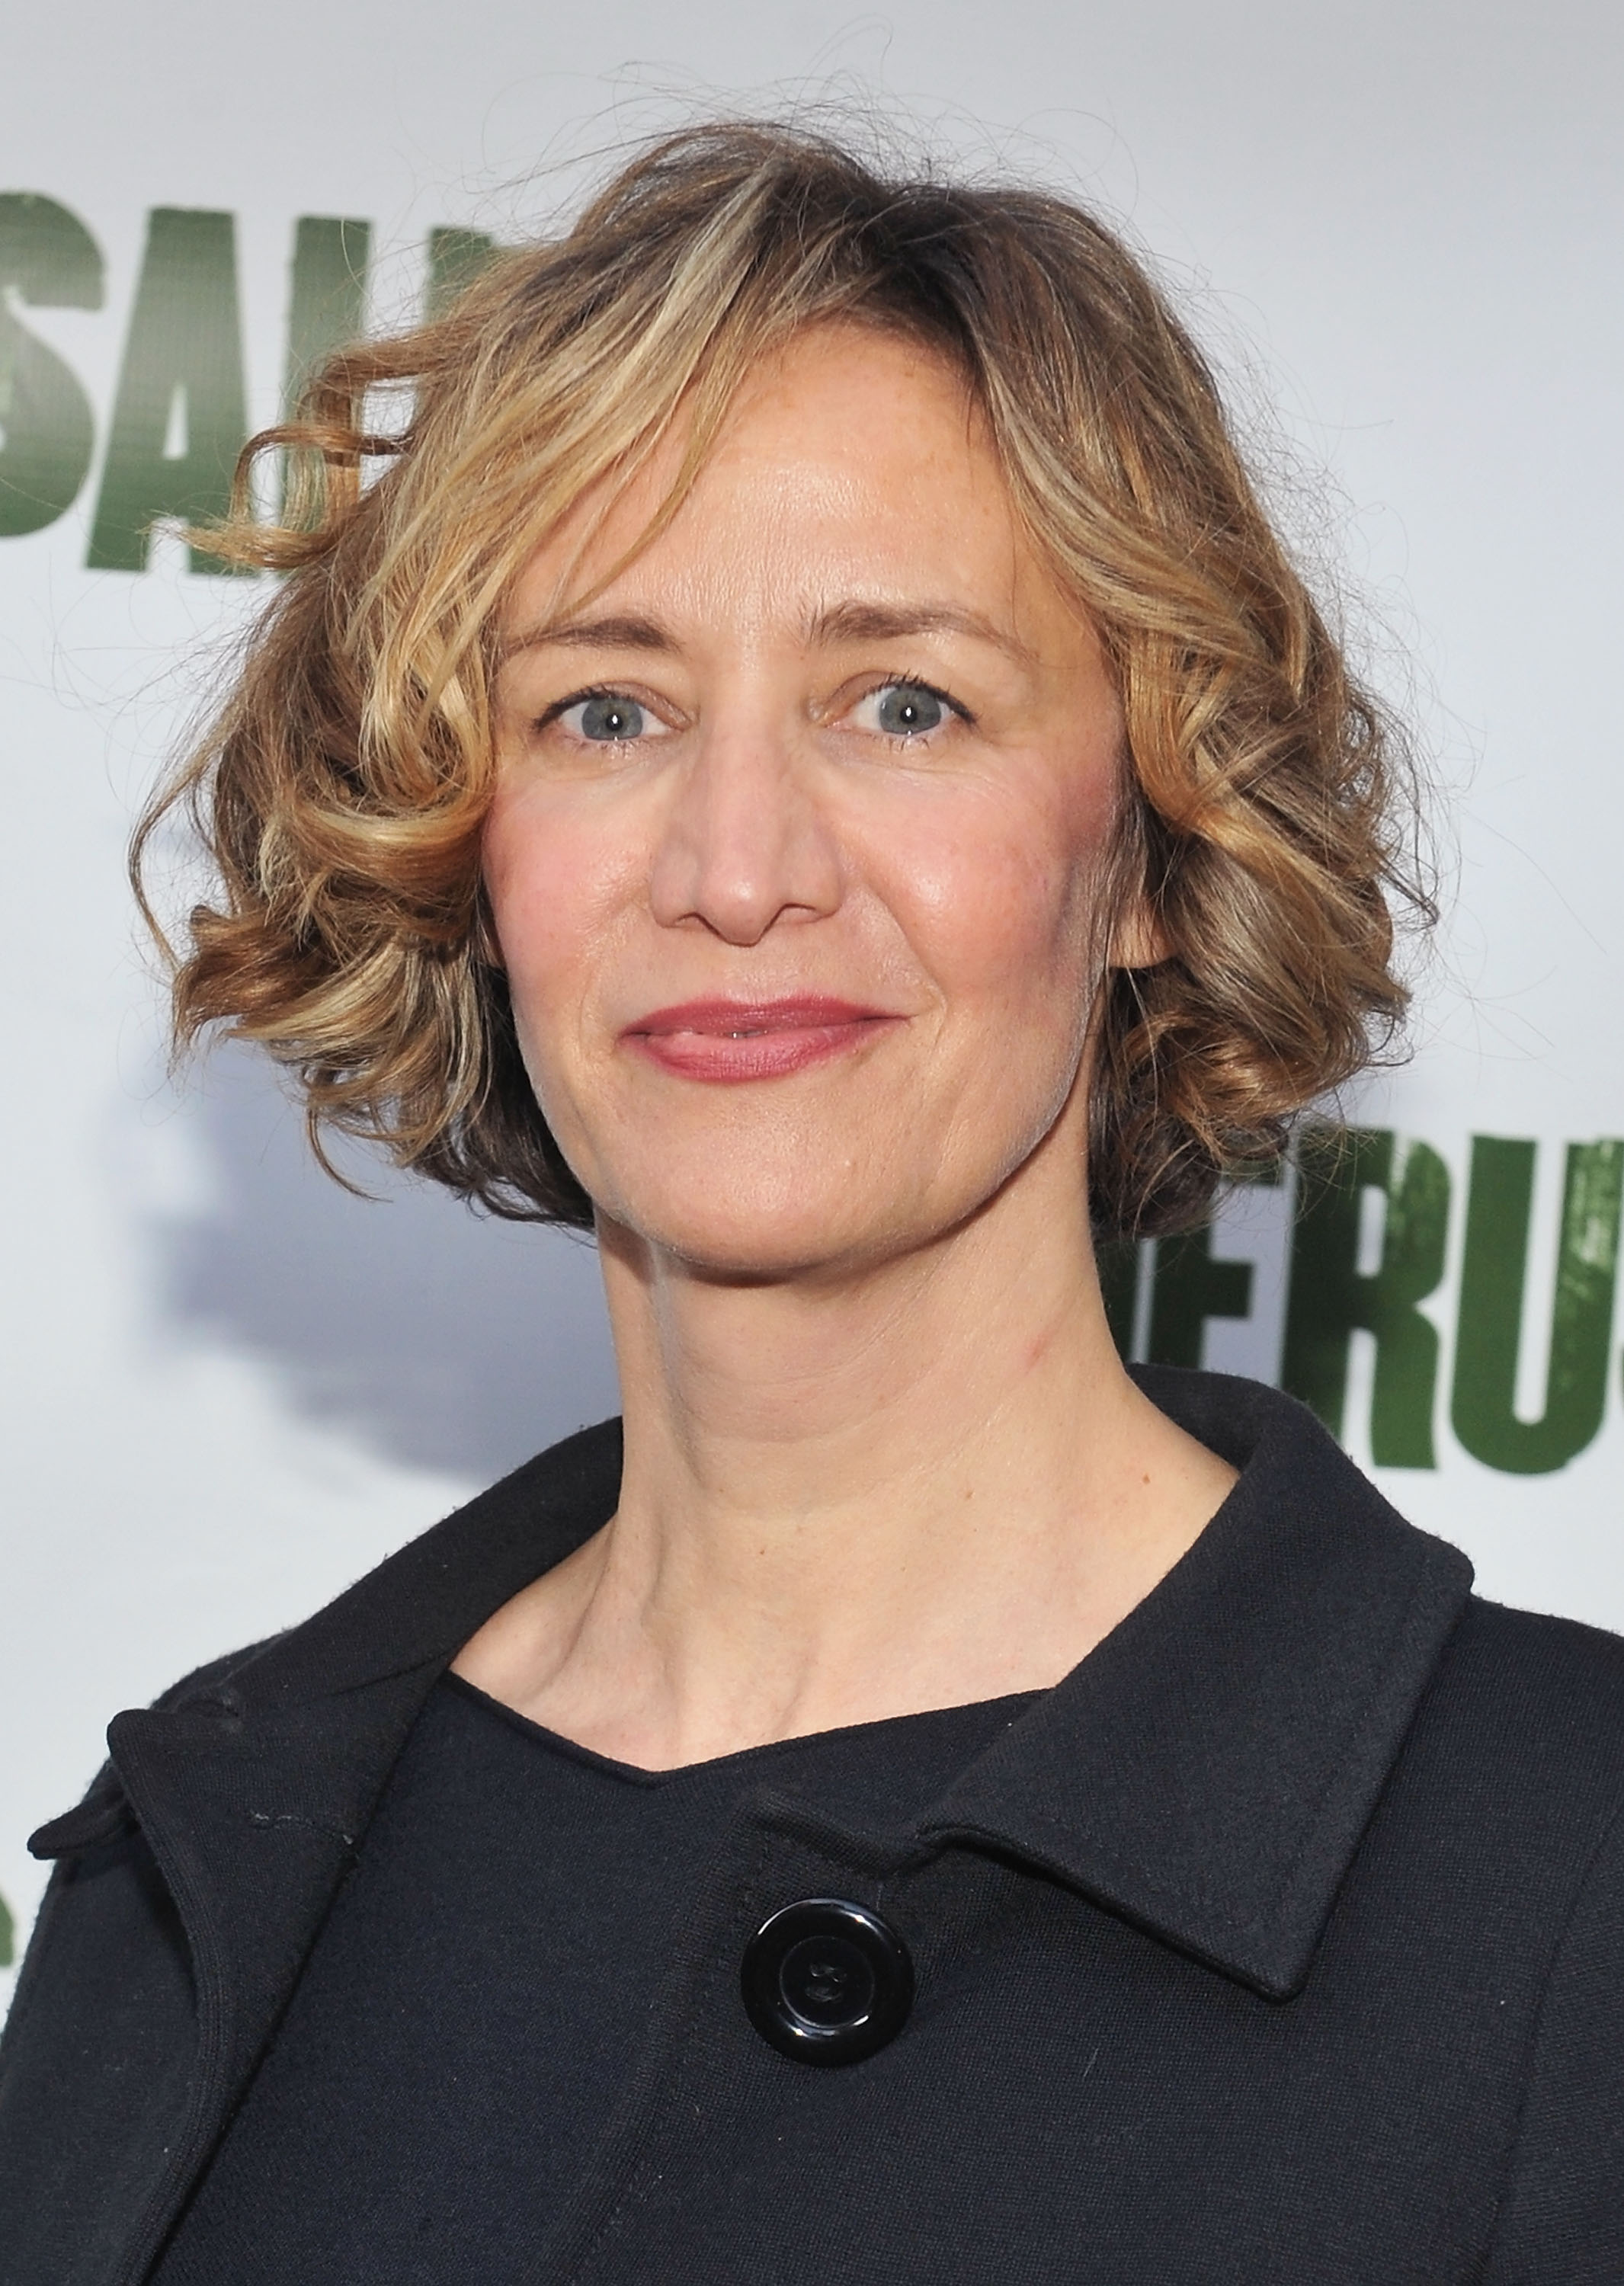 Damages adds janet mcteer for final season vulture - Gay porn casting couch ...